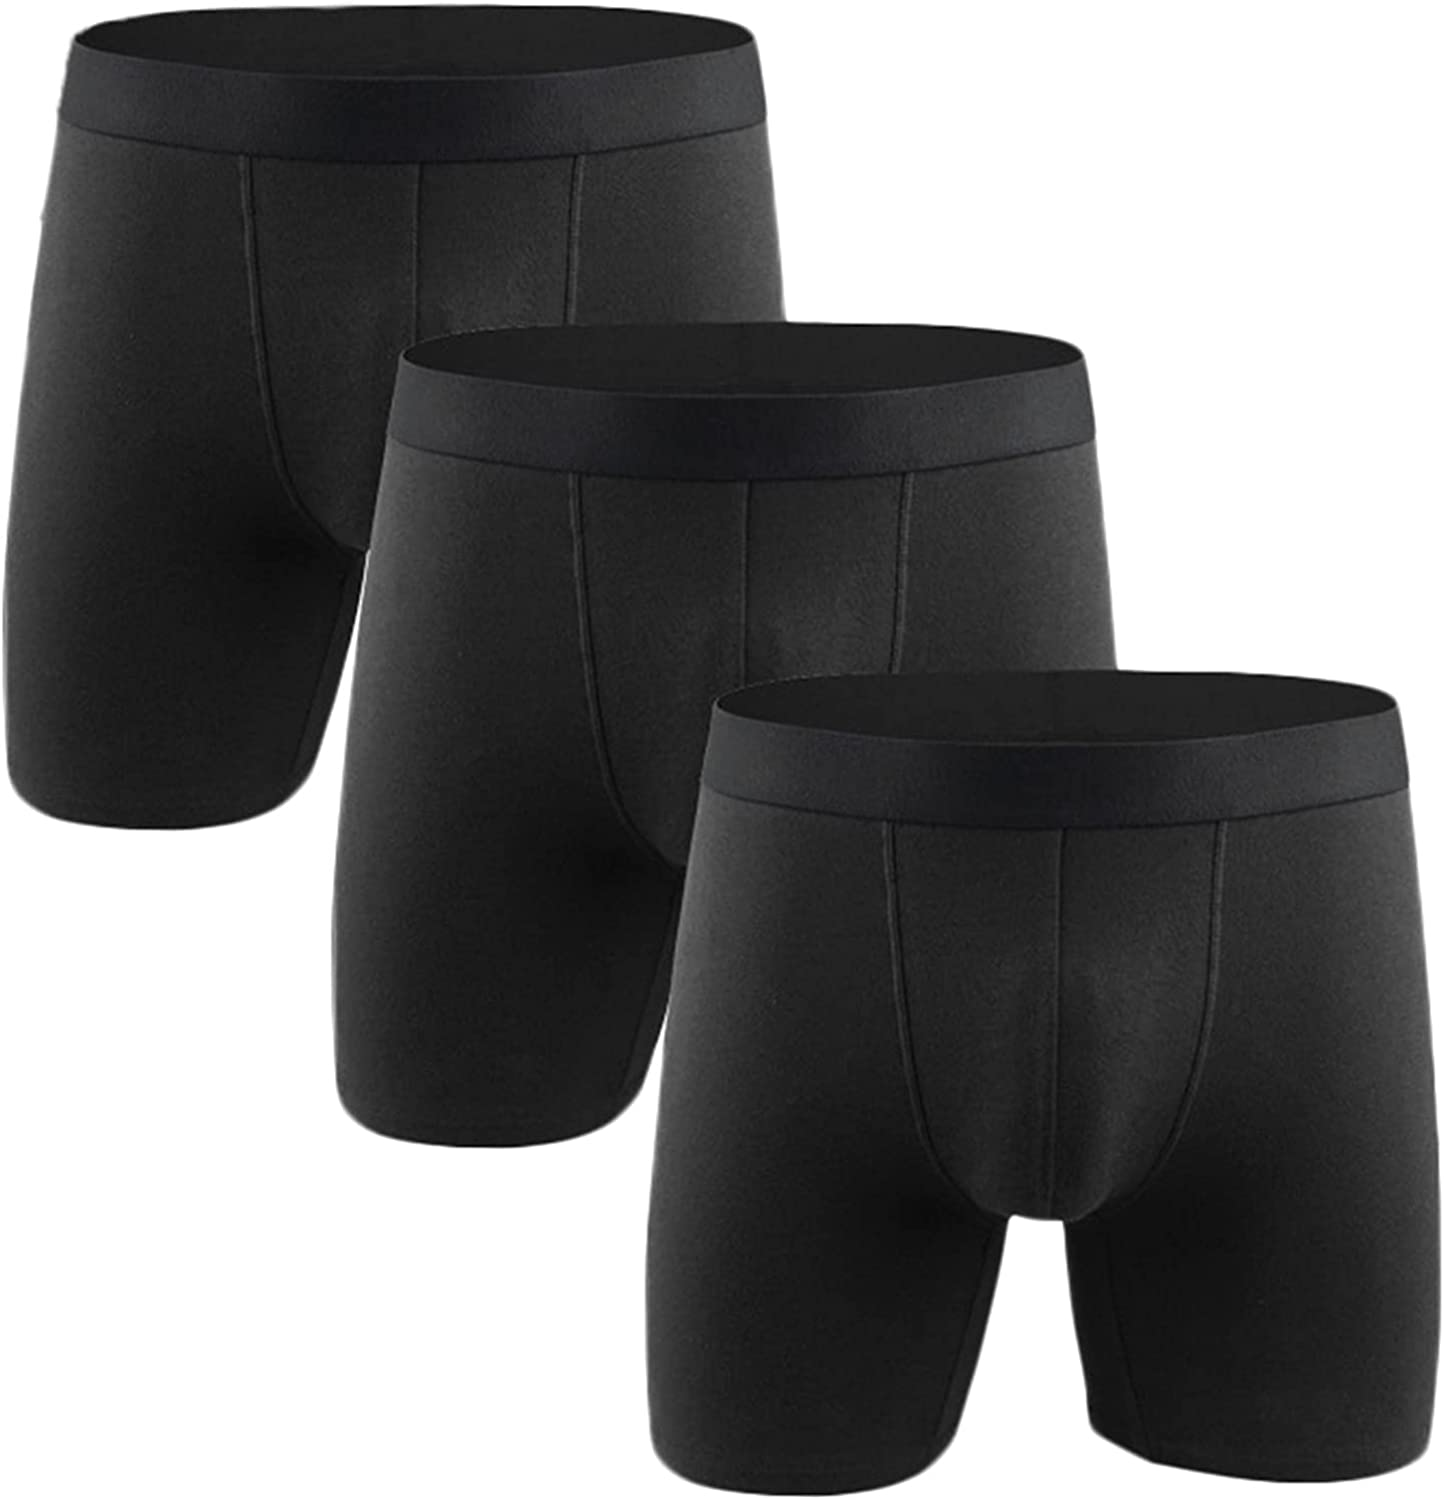 Andongnywell Men's Mid waist Sport Solid color waisted Boxer Briefs U convex design Underwear 3 Pack